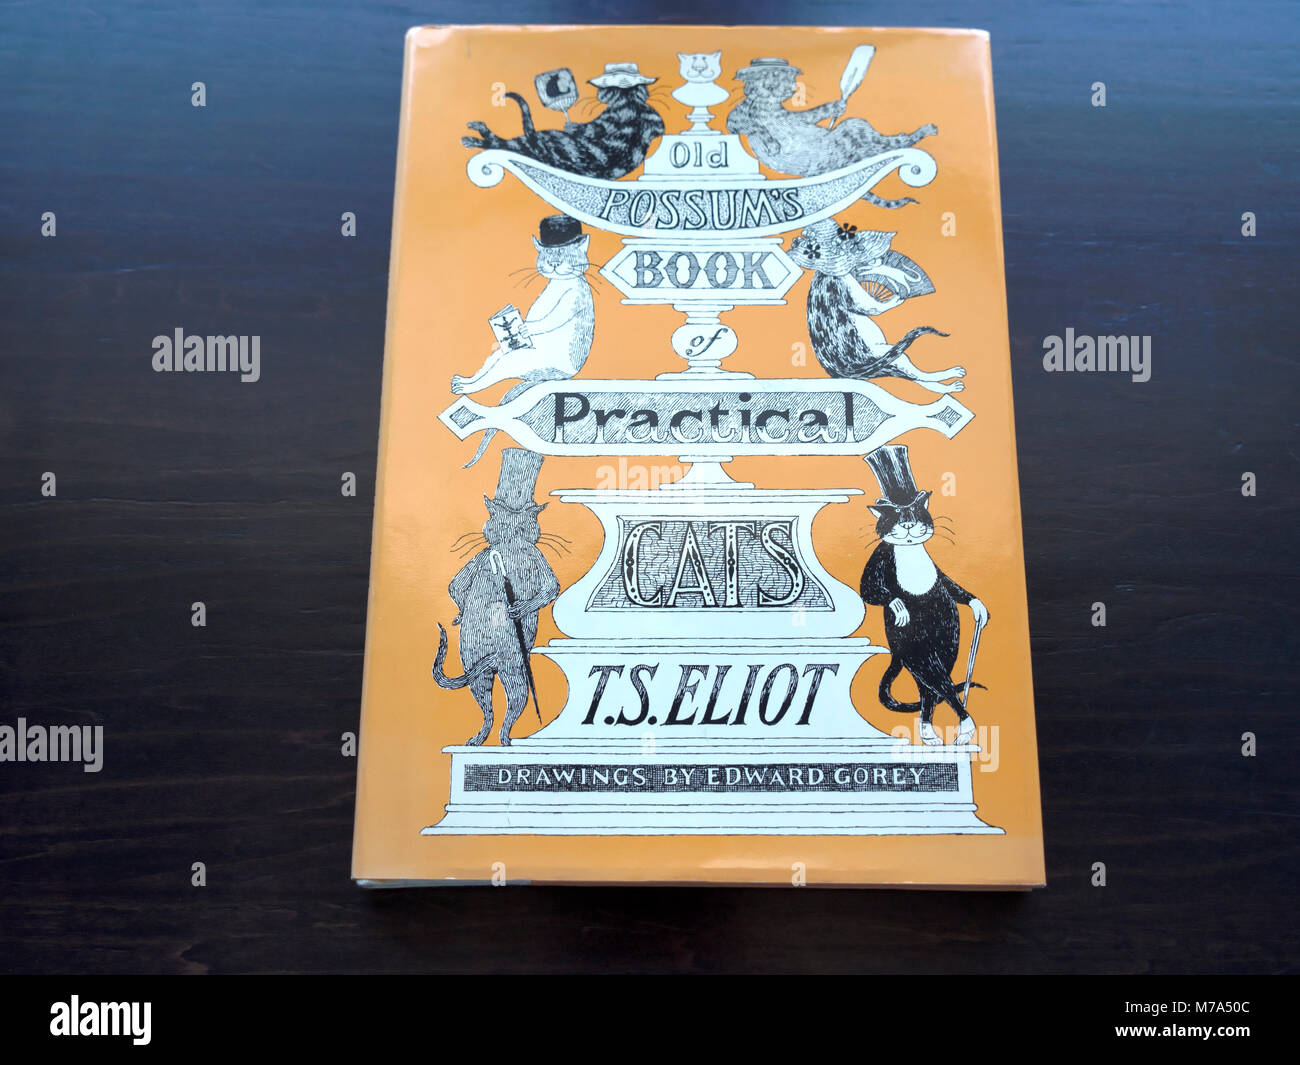 Old Possums Book of Practical Cats by TS Eliot - Stock Image